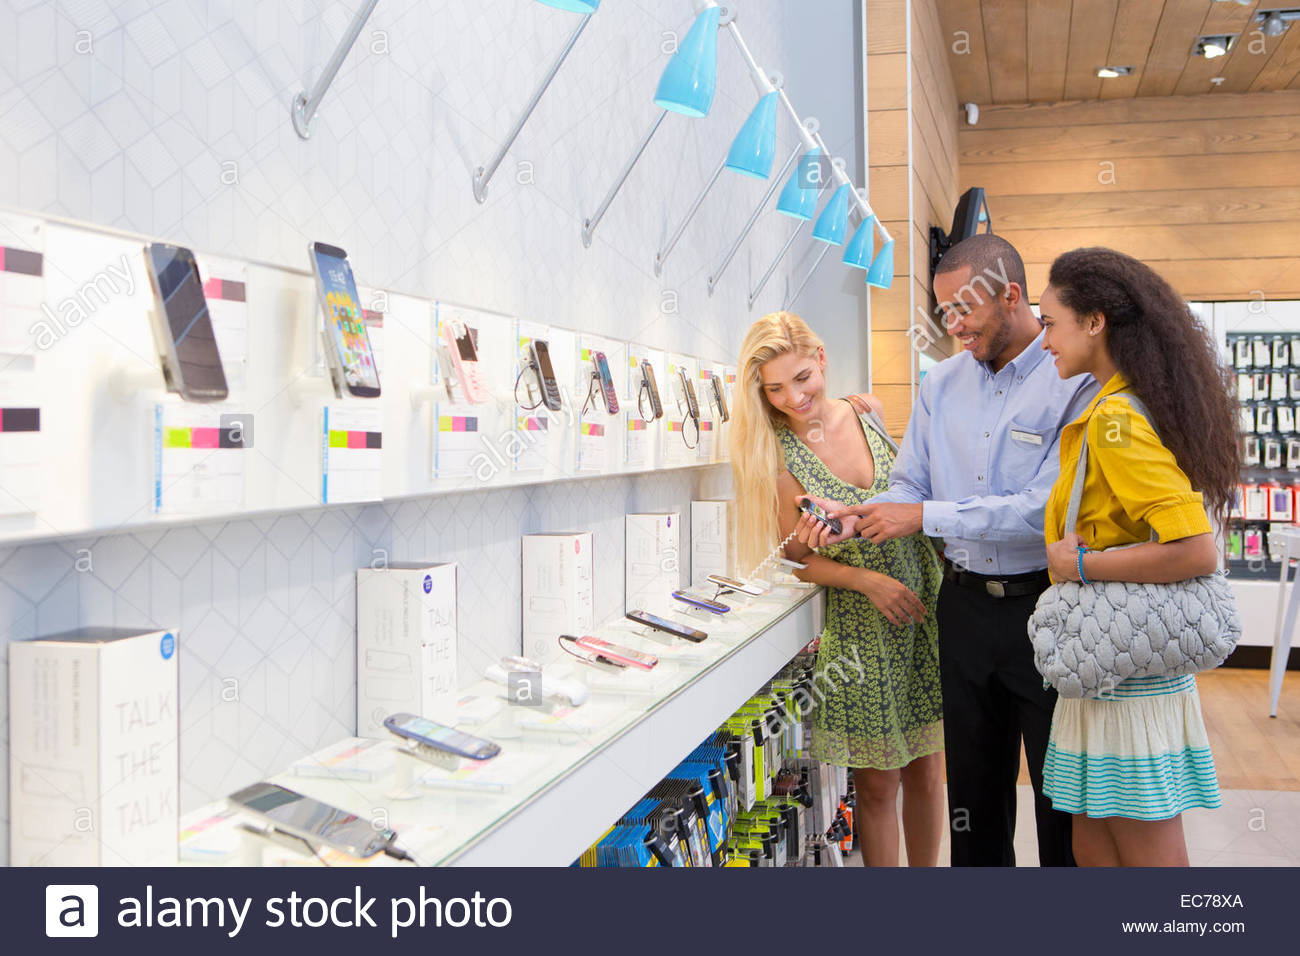 Store manager assisting two female customers in phone store - Stock Image